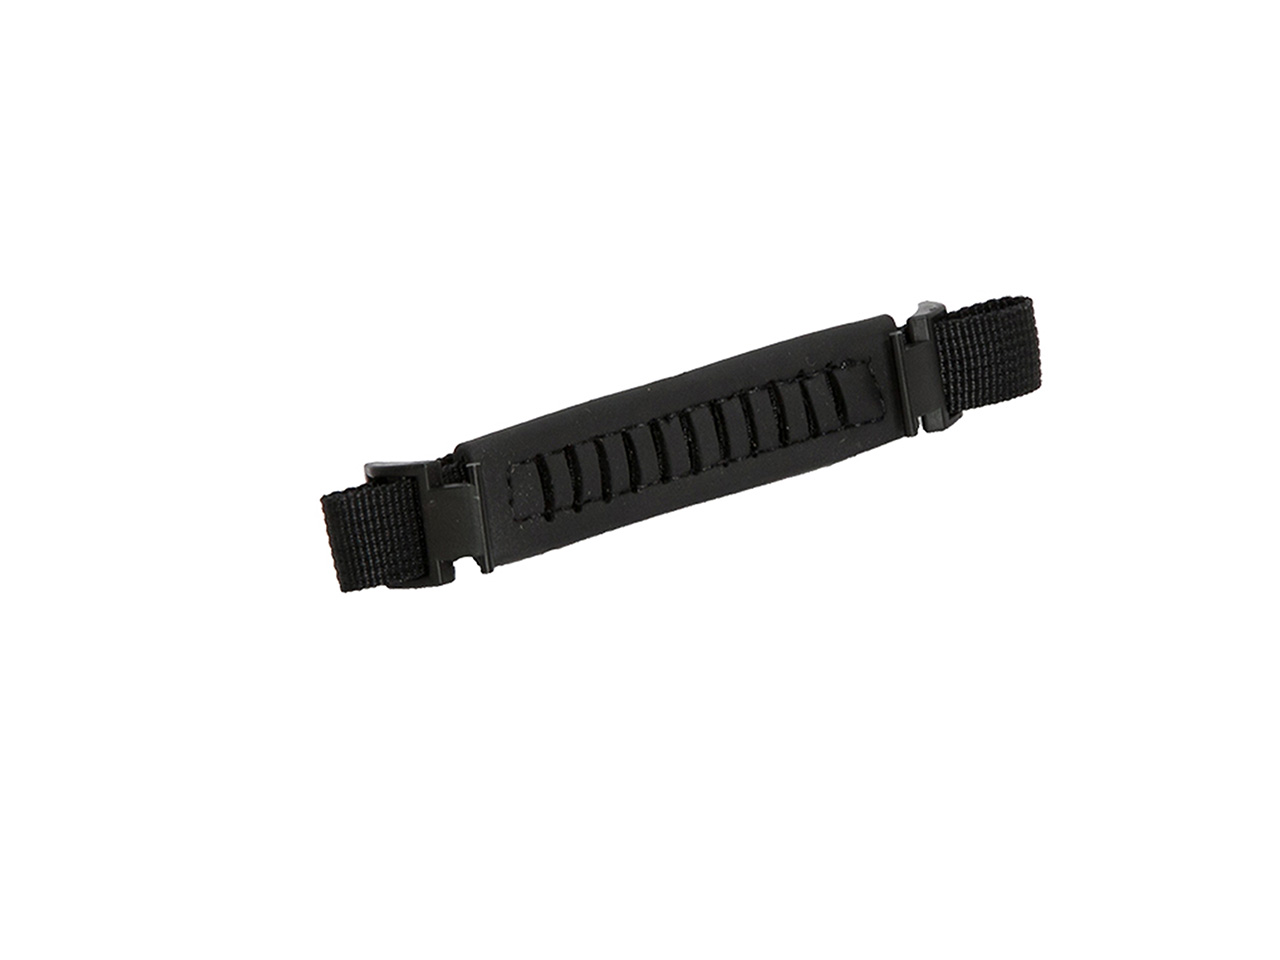 CE196A-Handheld-400X-Series-Finger-Strap-with-Fifty-Buckles.jpg